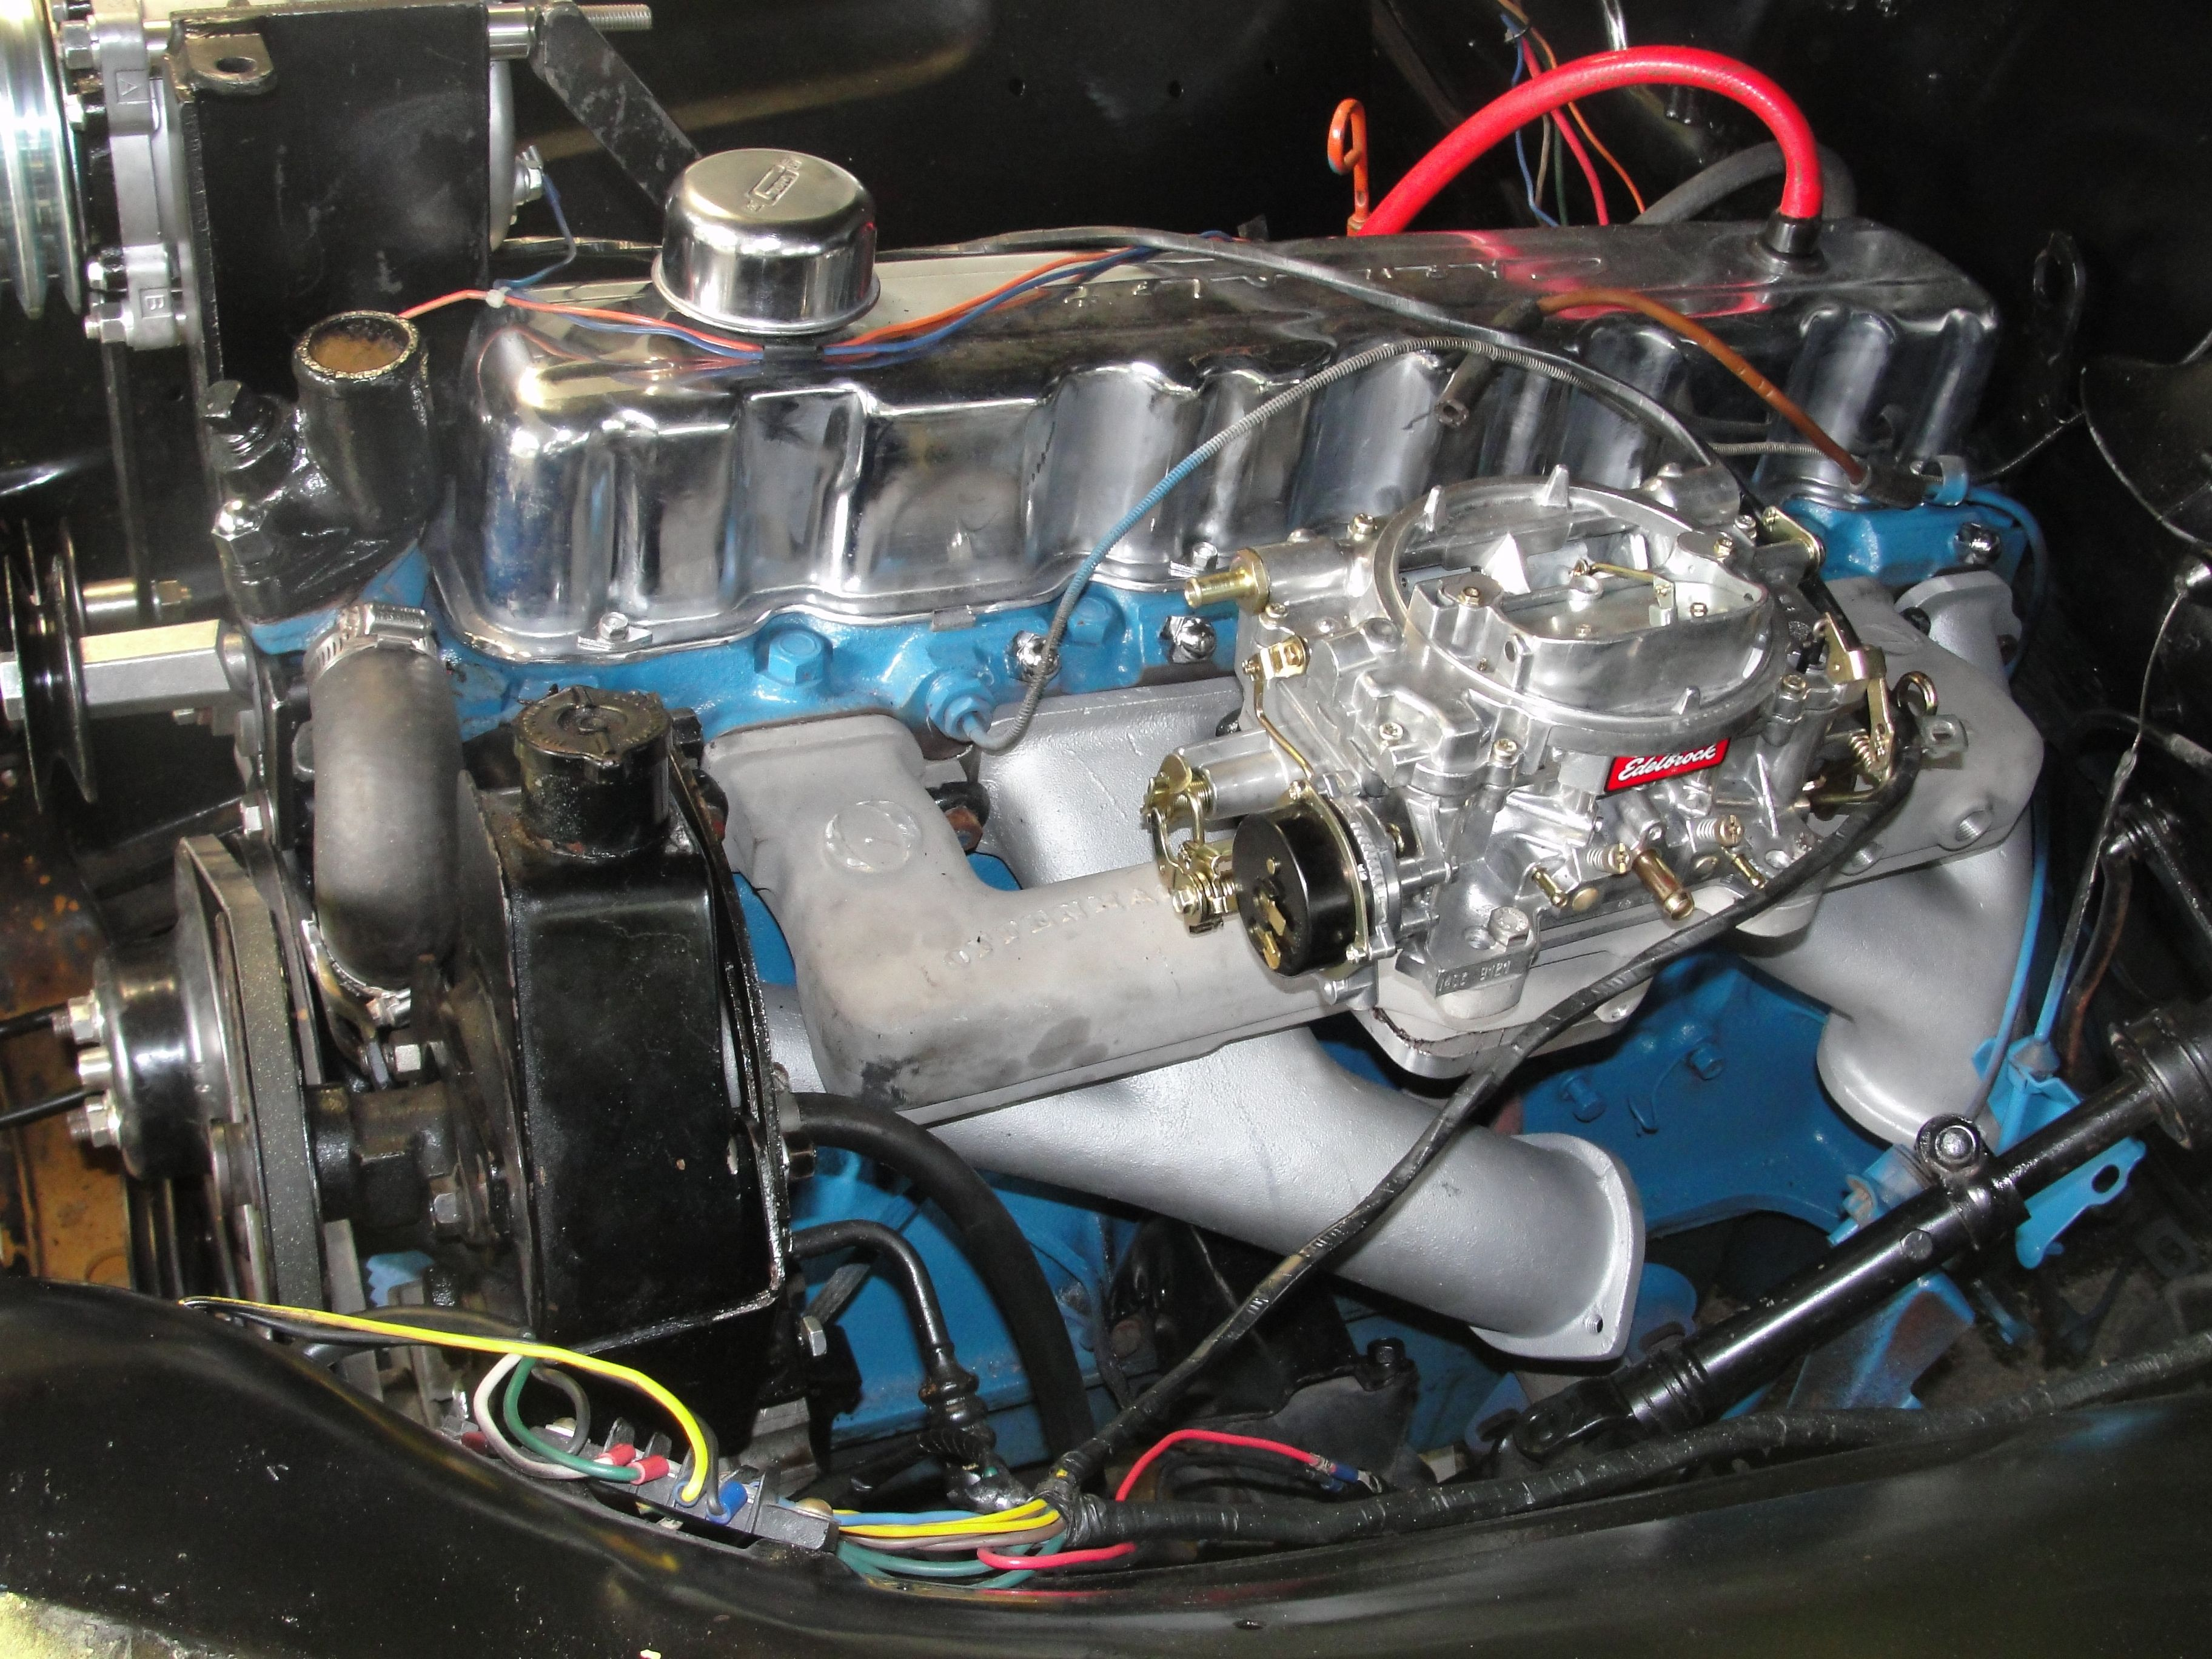 Stock 292 inline 6 motor with a 350 turbo and offinhauser